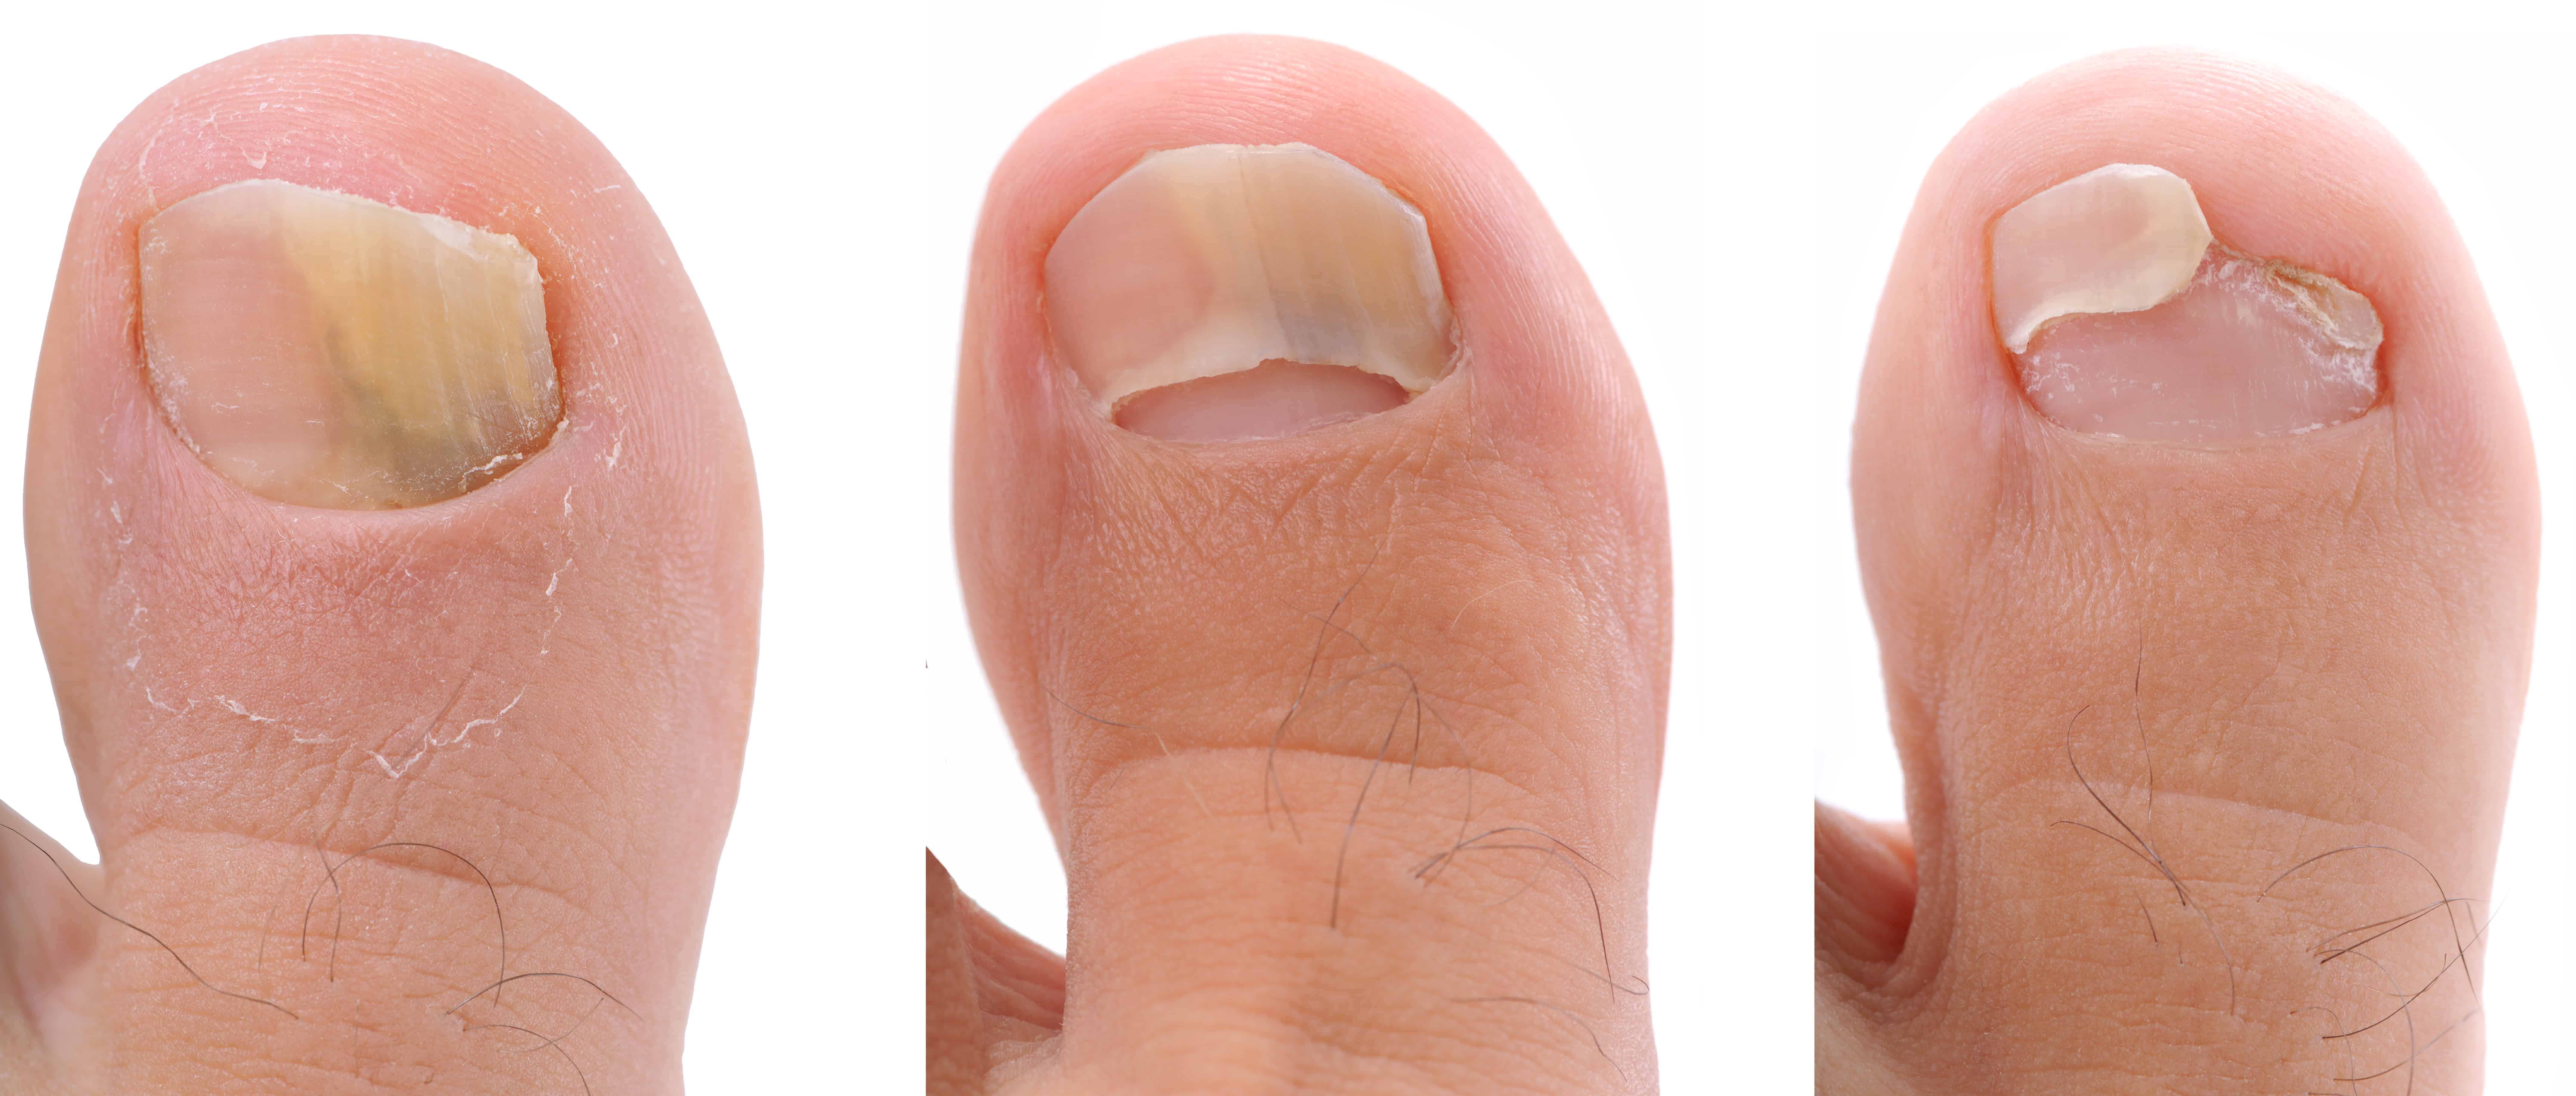 Fungal nail with \